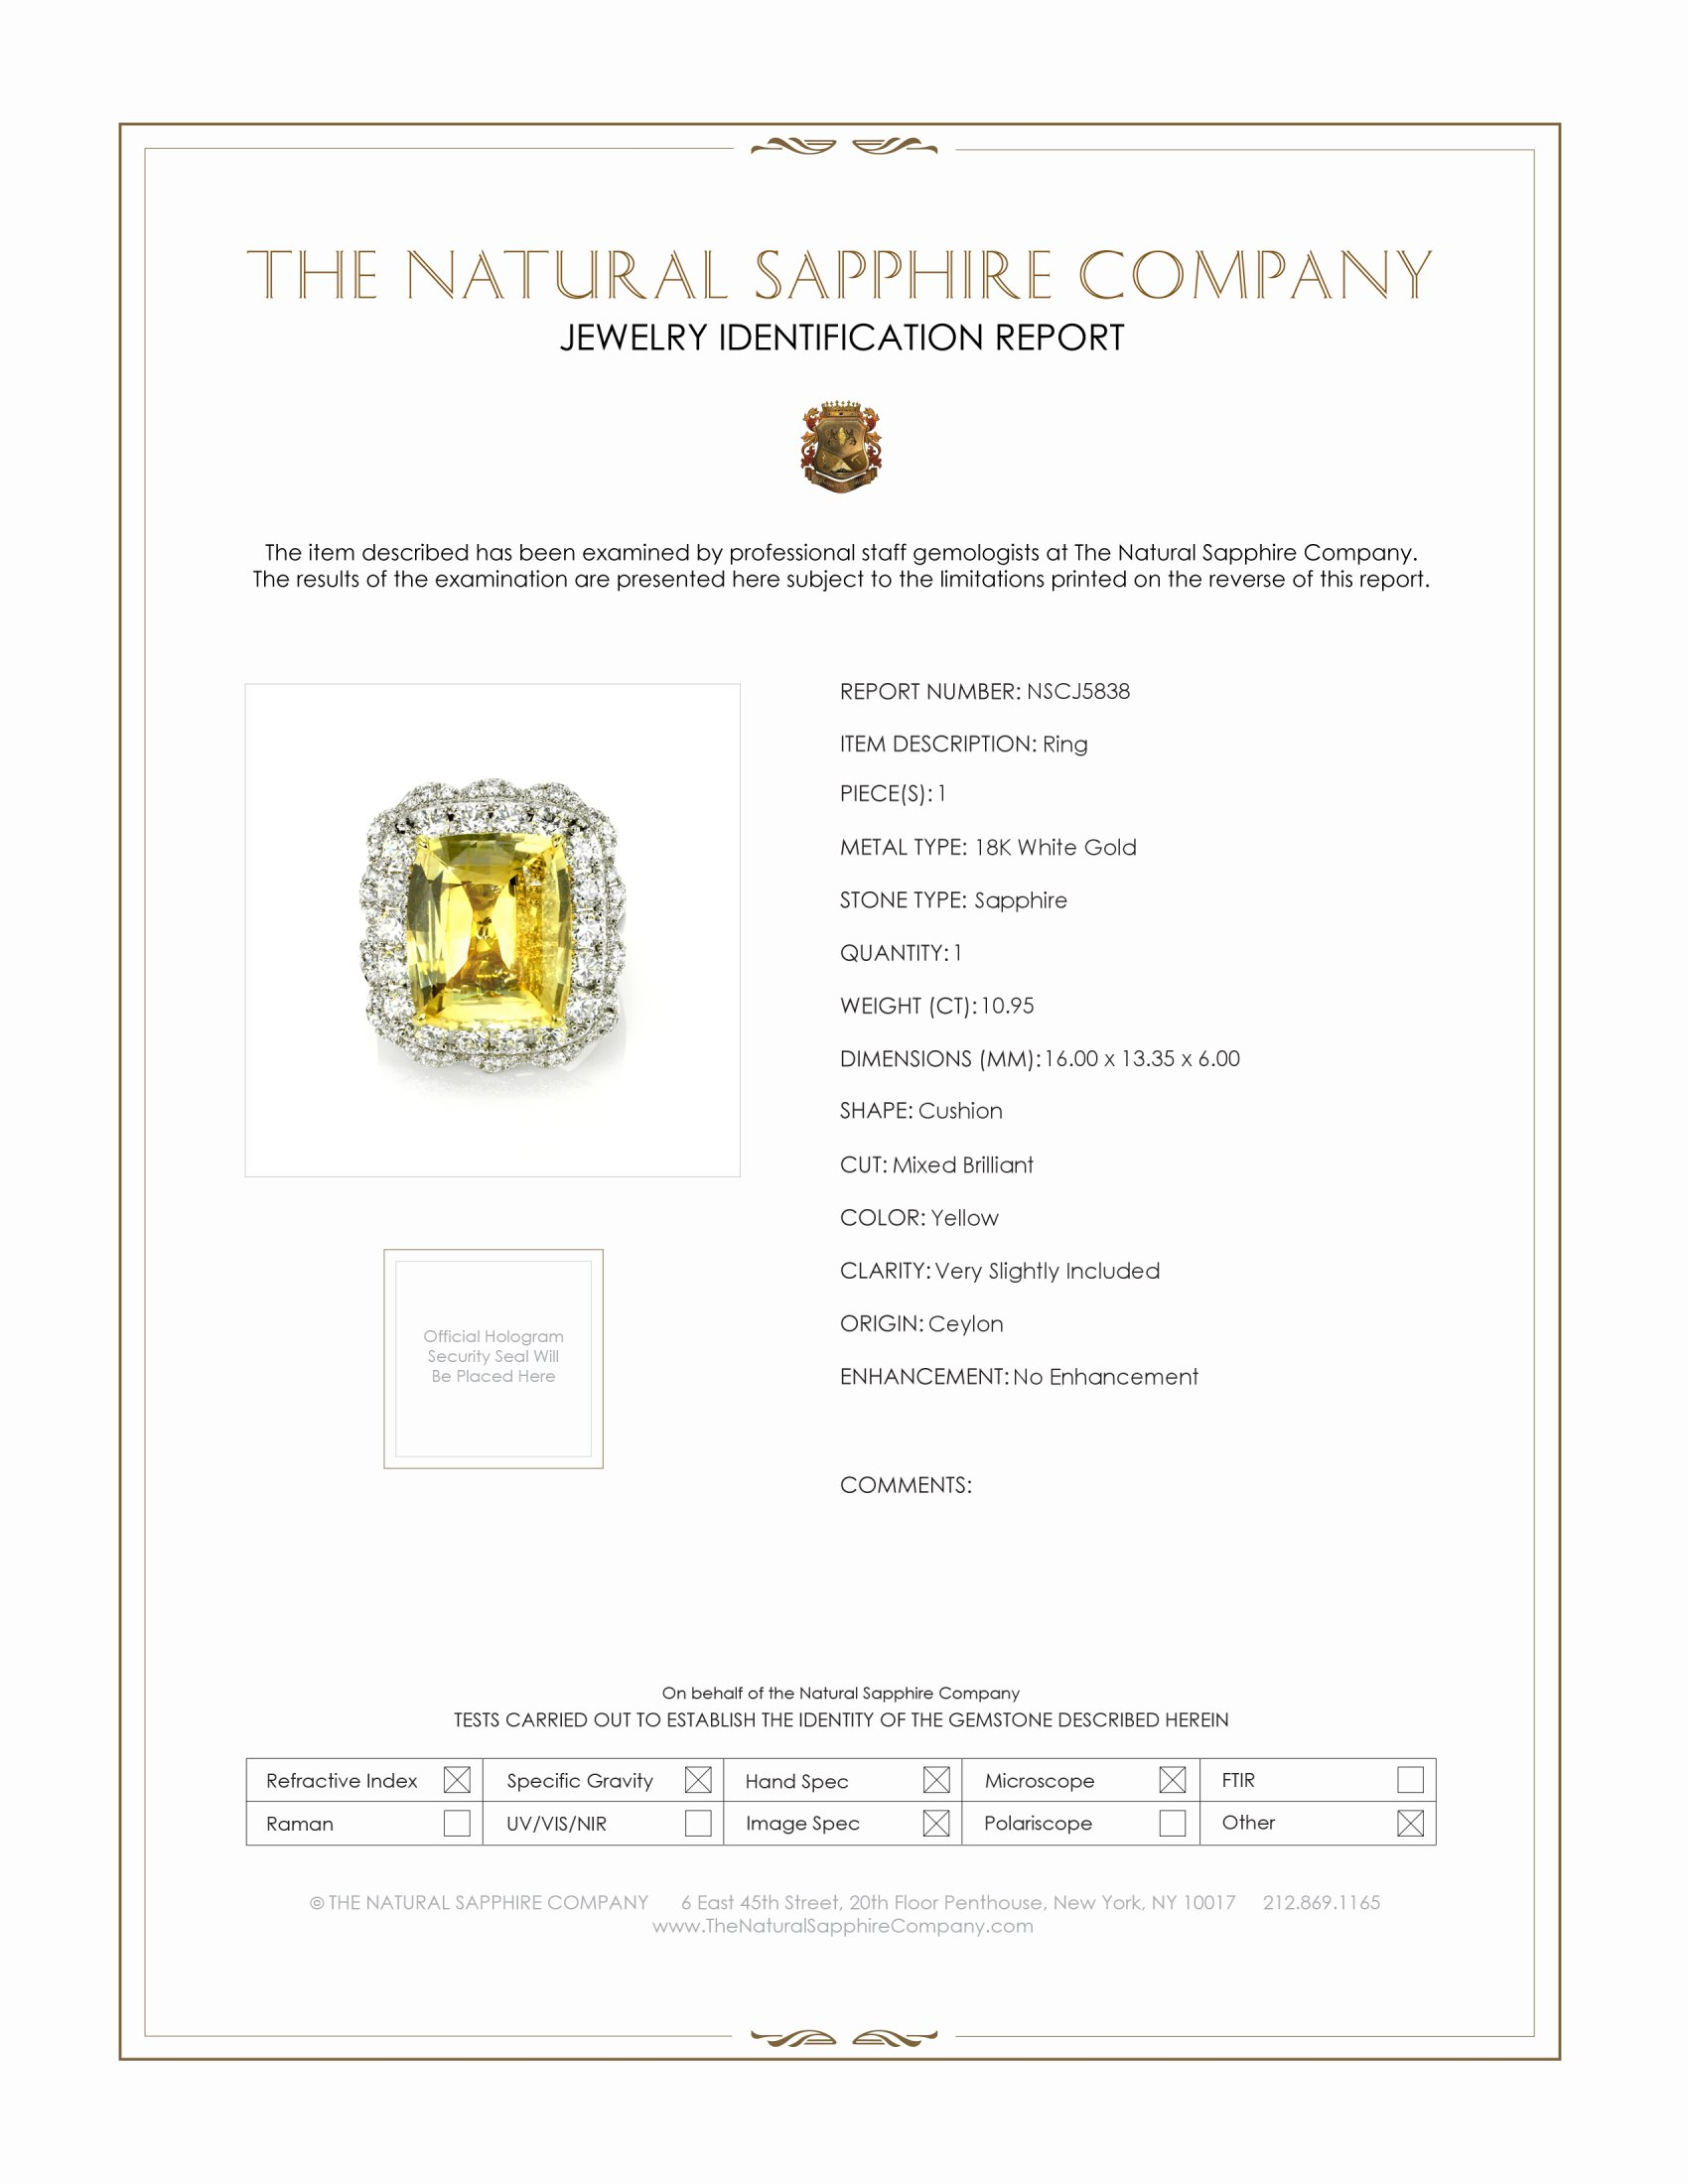 10.95ct Yellow Sapphire Ring Certification